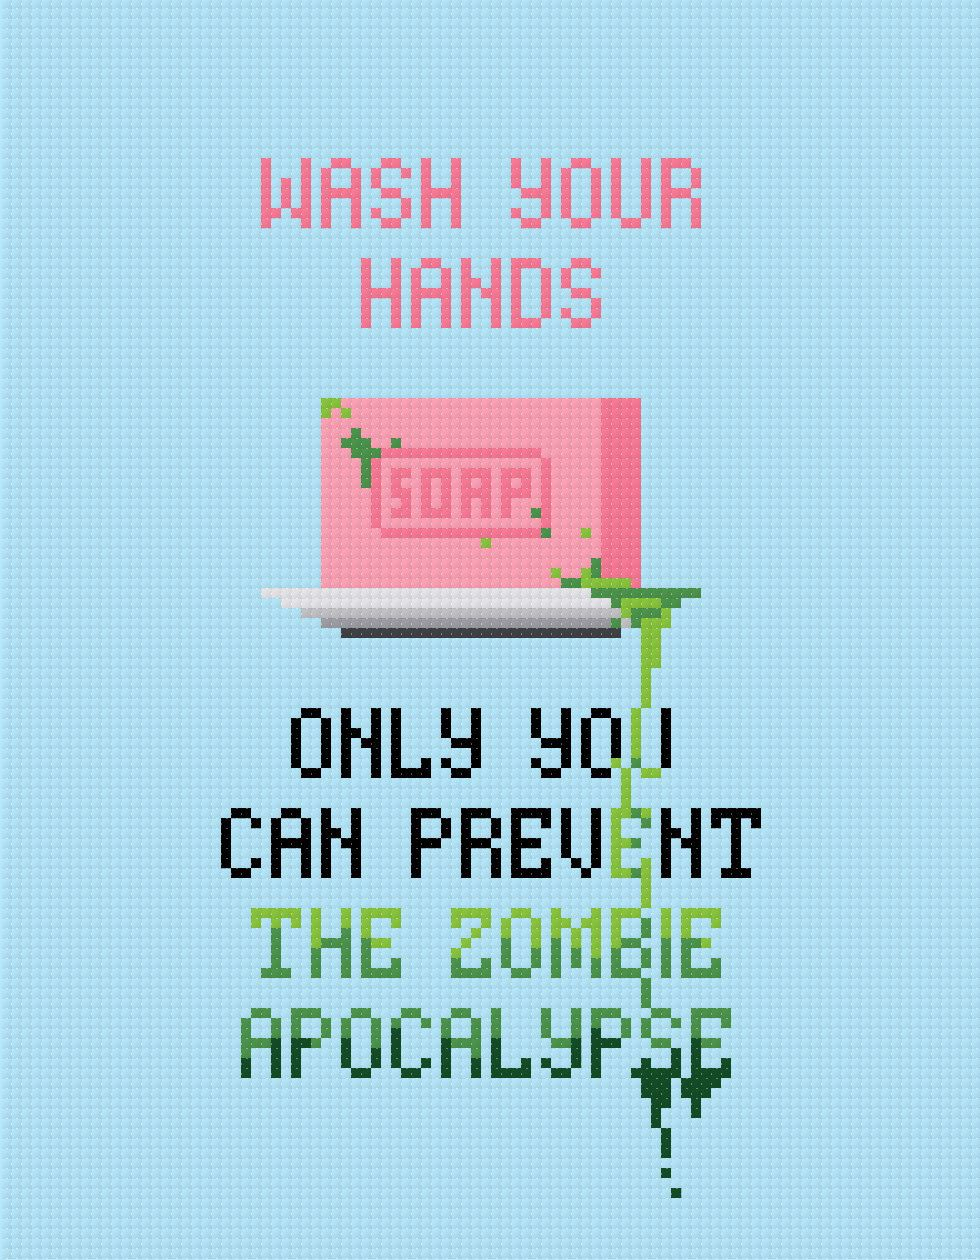 Wash your hands quote cross stitch pdf pattern download